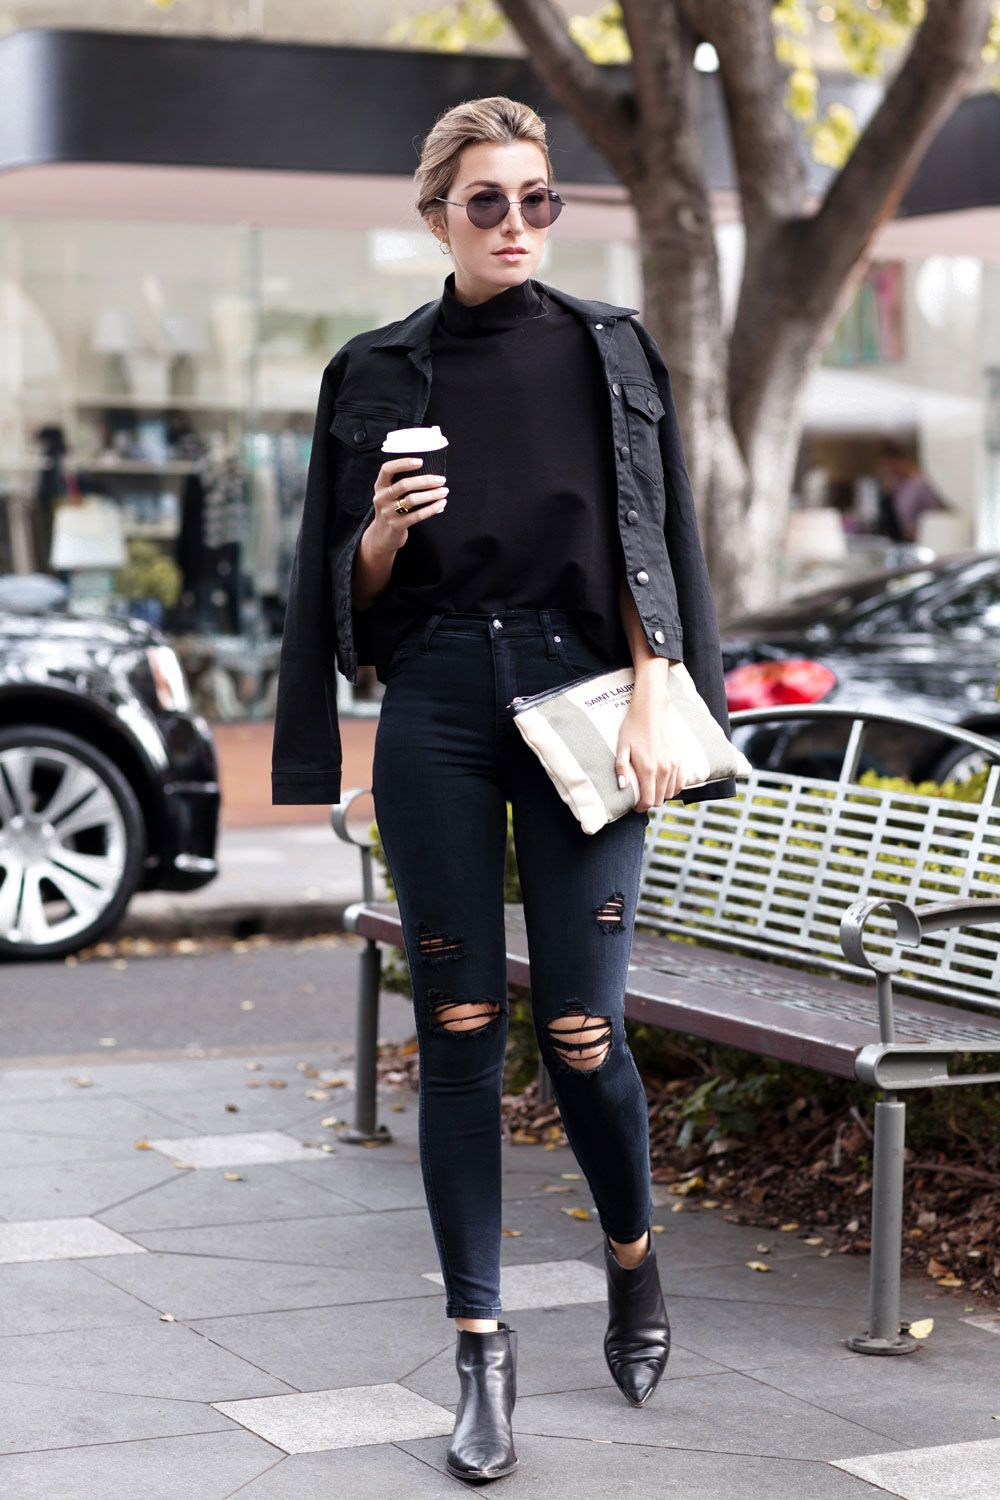 c7484c04184 3 cool (and unique!) ways to wear black denim now Nobody Denim top ...